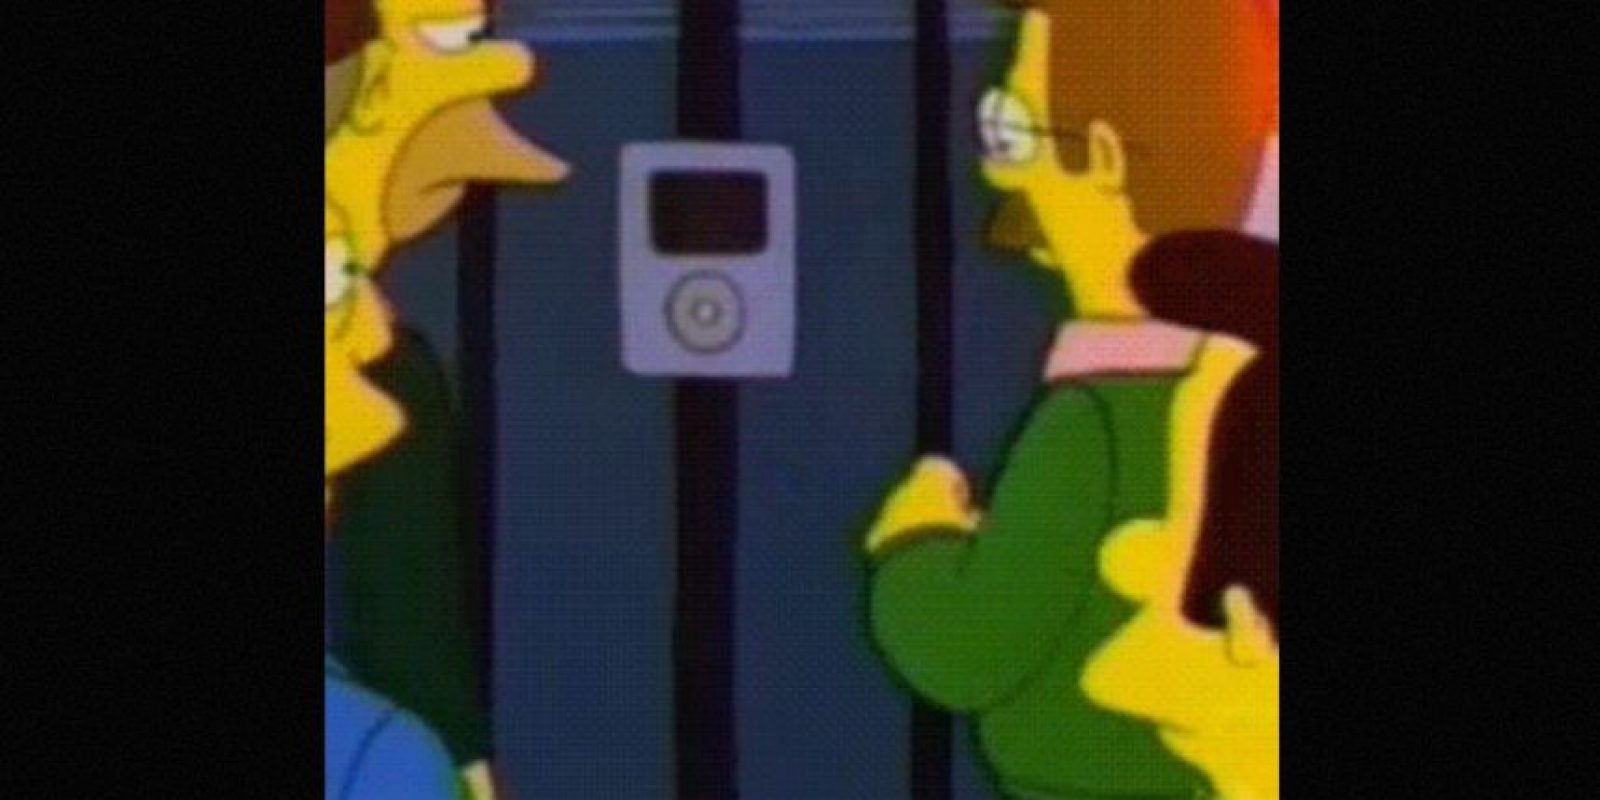 En 1996, el Intercom de la casa del Sr. Burns parecía un iPod Foto: vía FOX